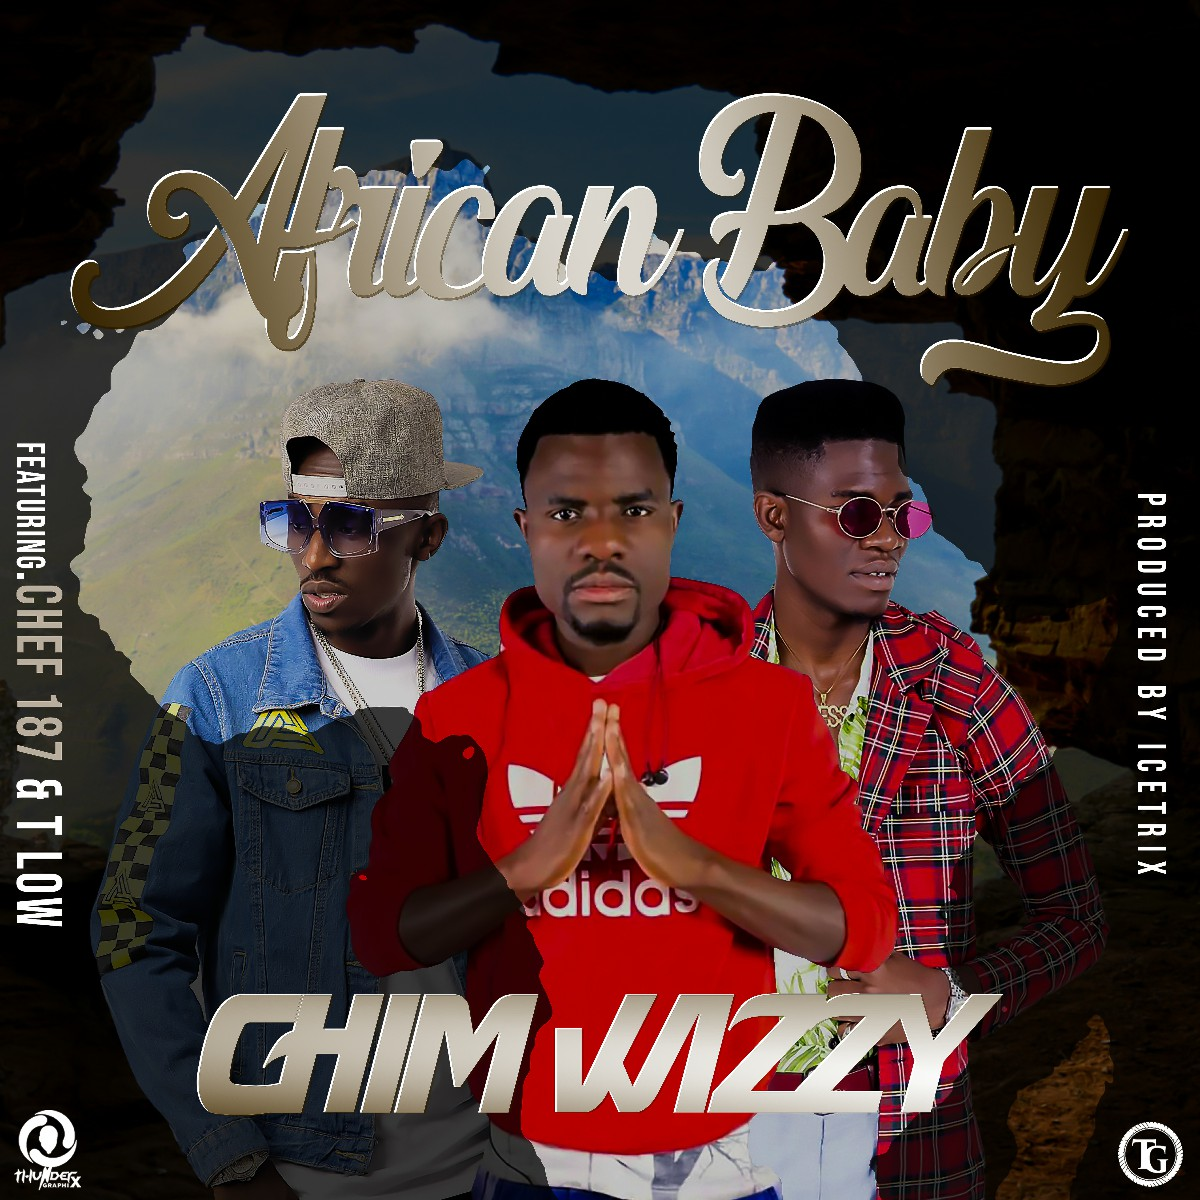 Chim Wizzy ft. T-Low & Chef 187 - African Baby